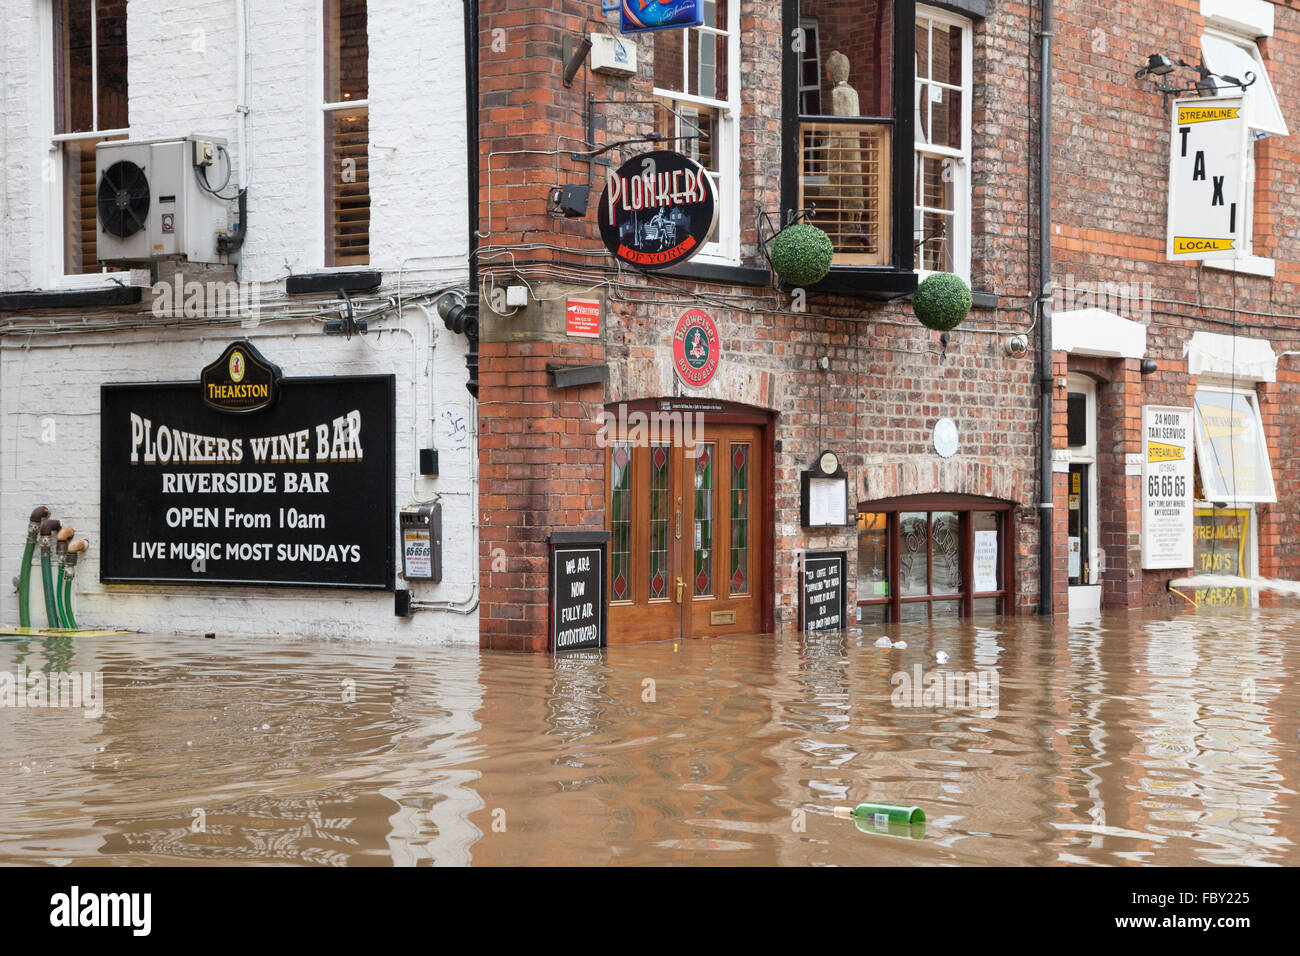 Extreme flooding in the centre of York during a period of adverse weather in December 2015. Stock Photo